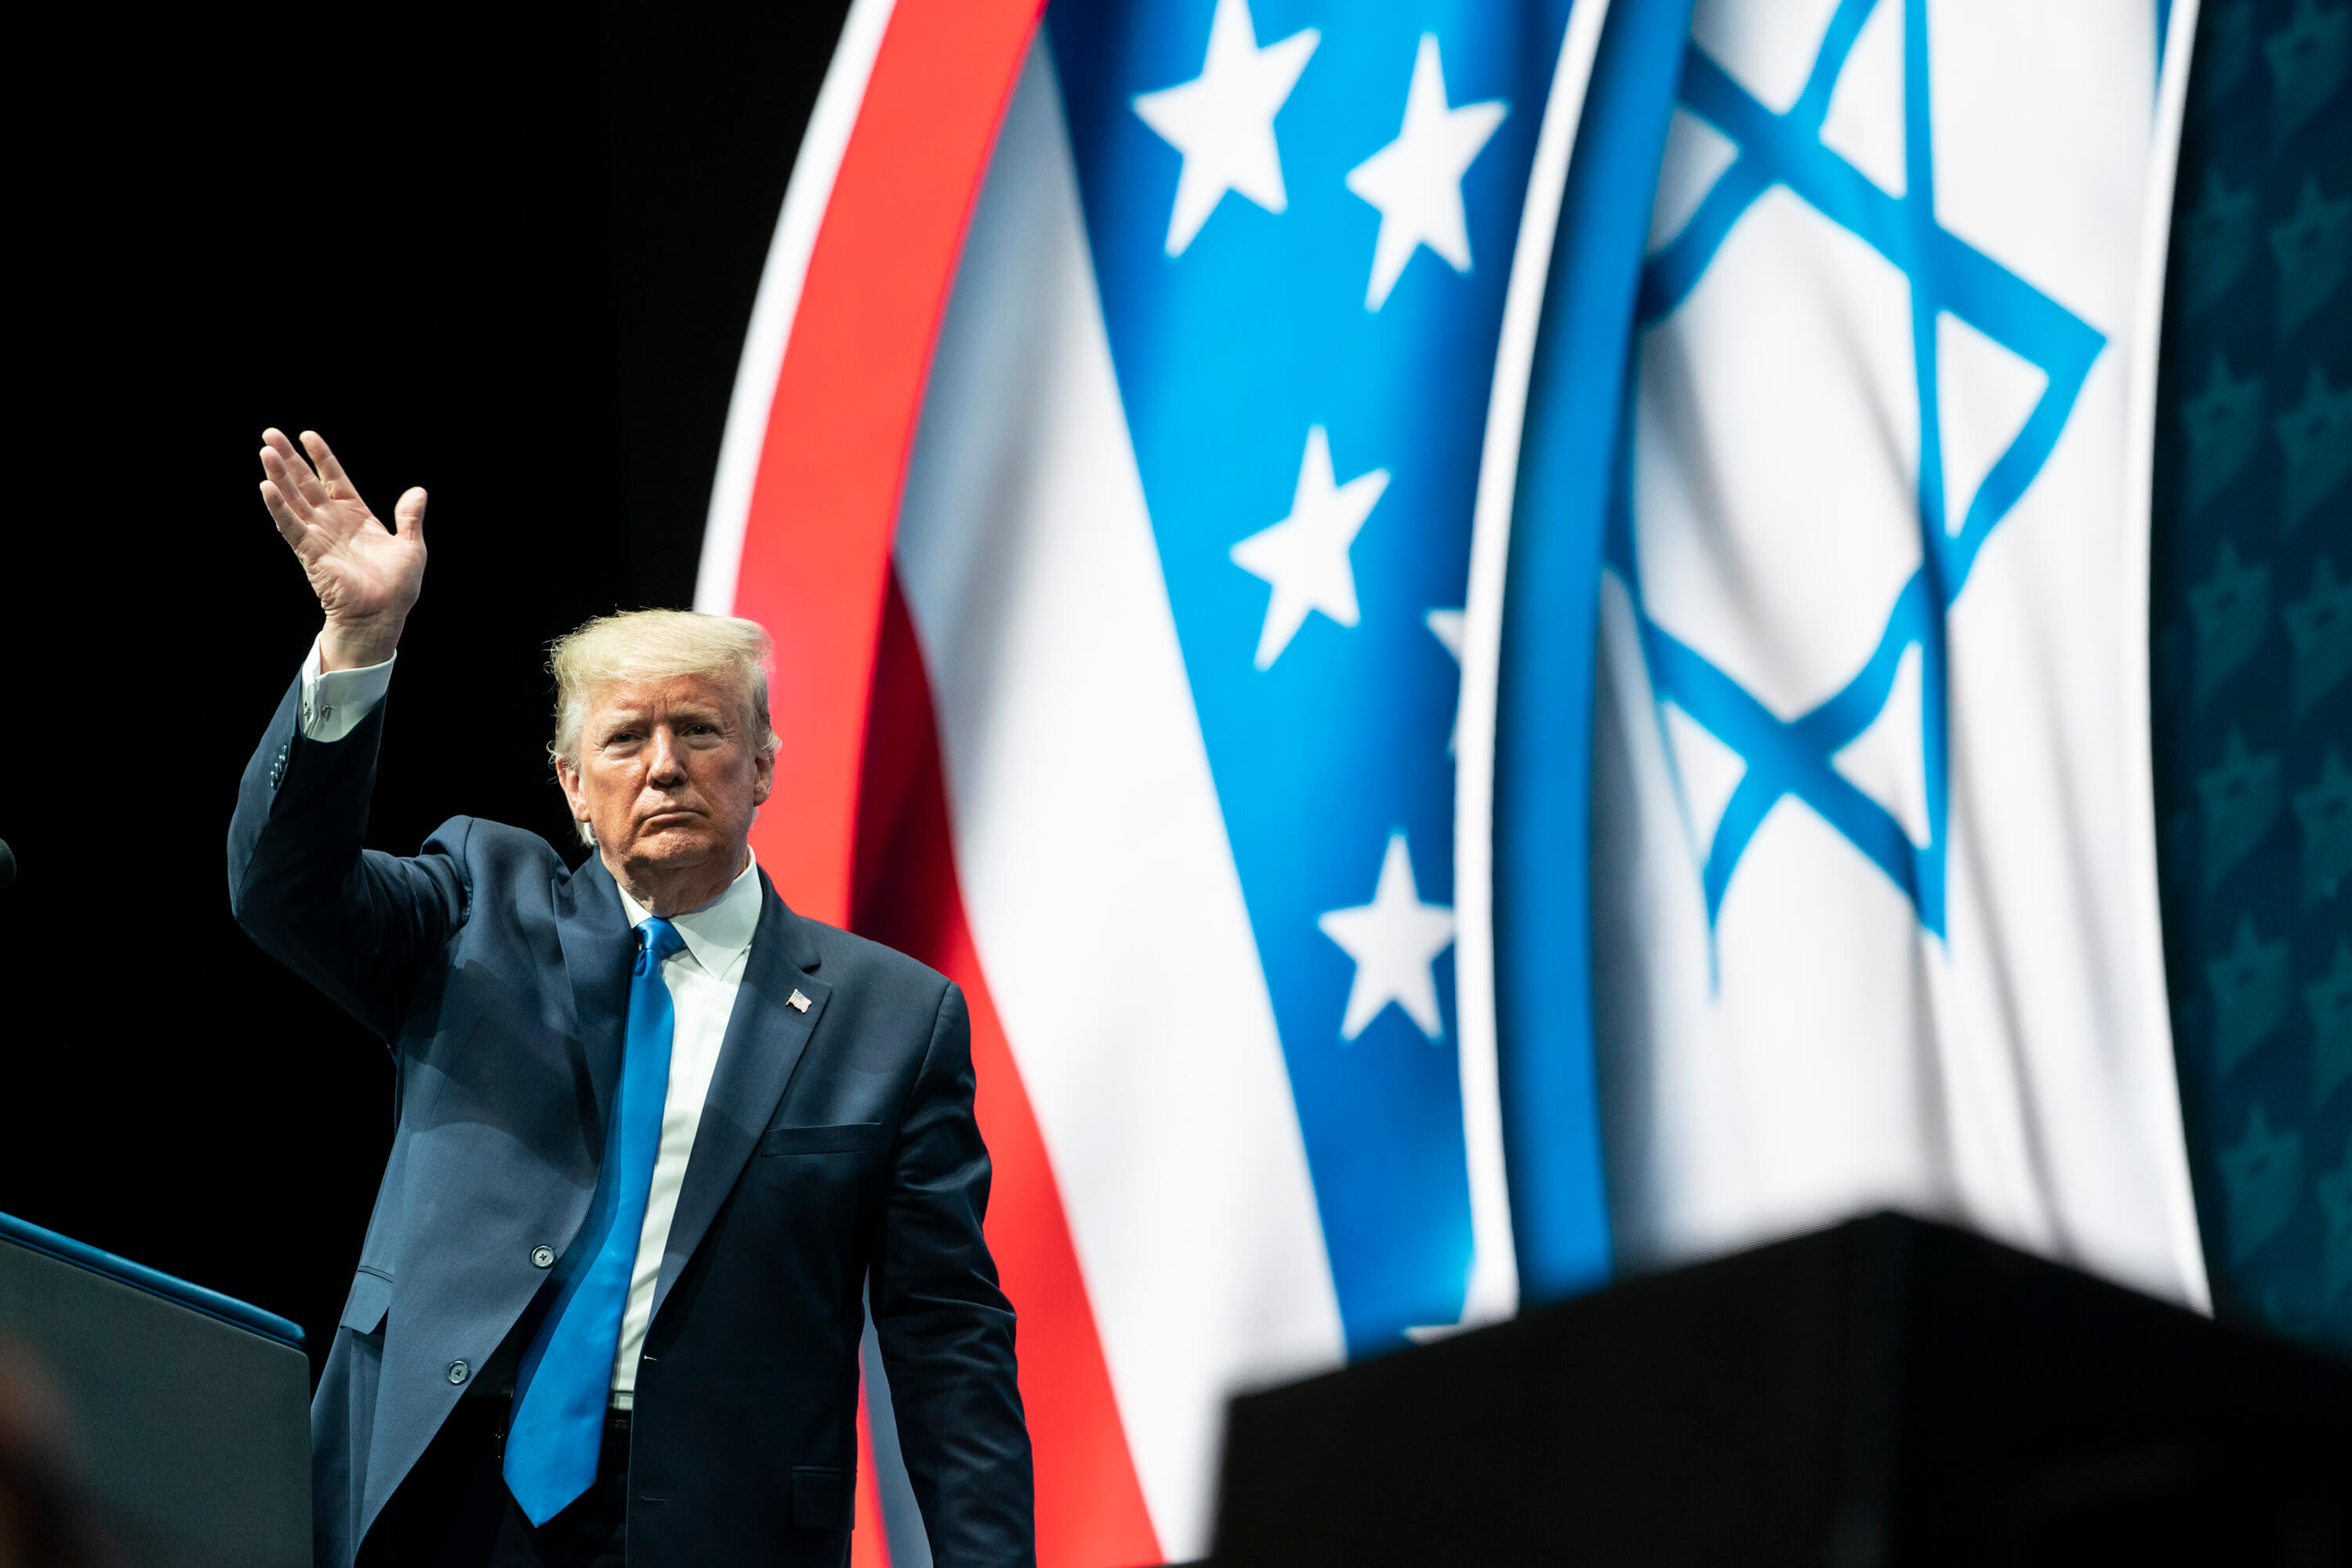 President Trump at the Israeli American Council National Summit, 2019. © The White House - Flickr.jpg